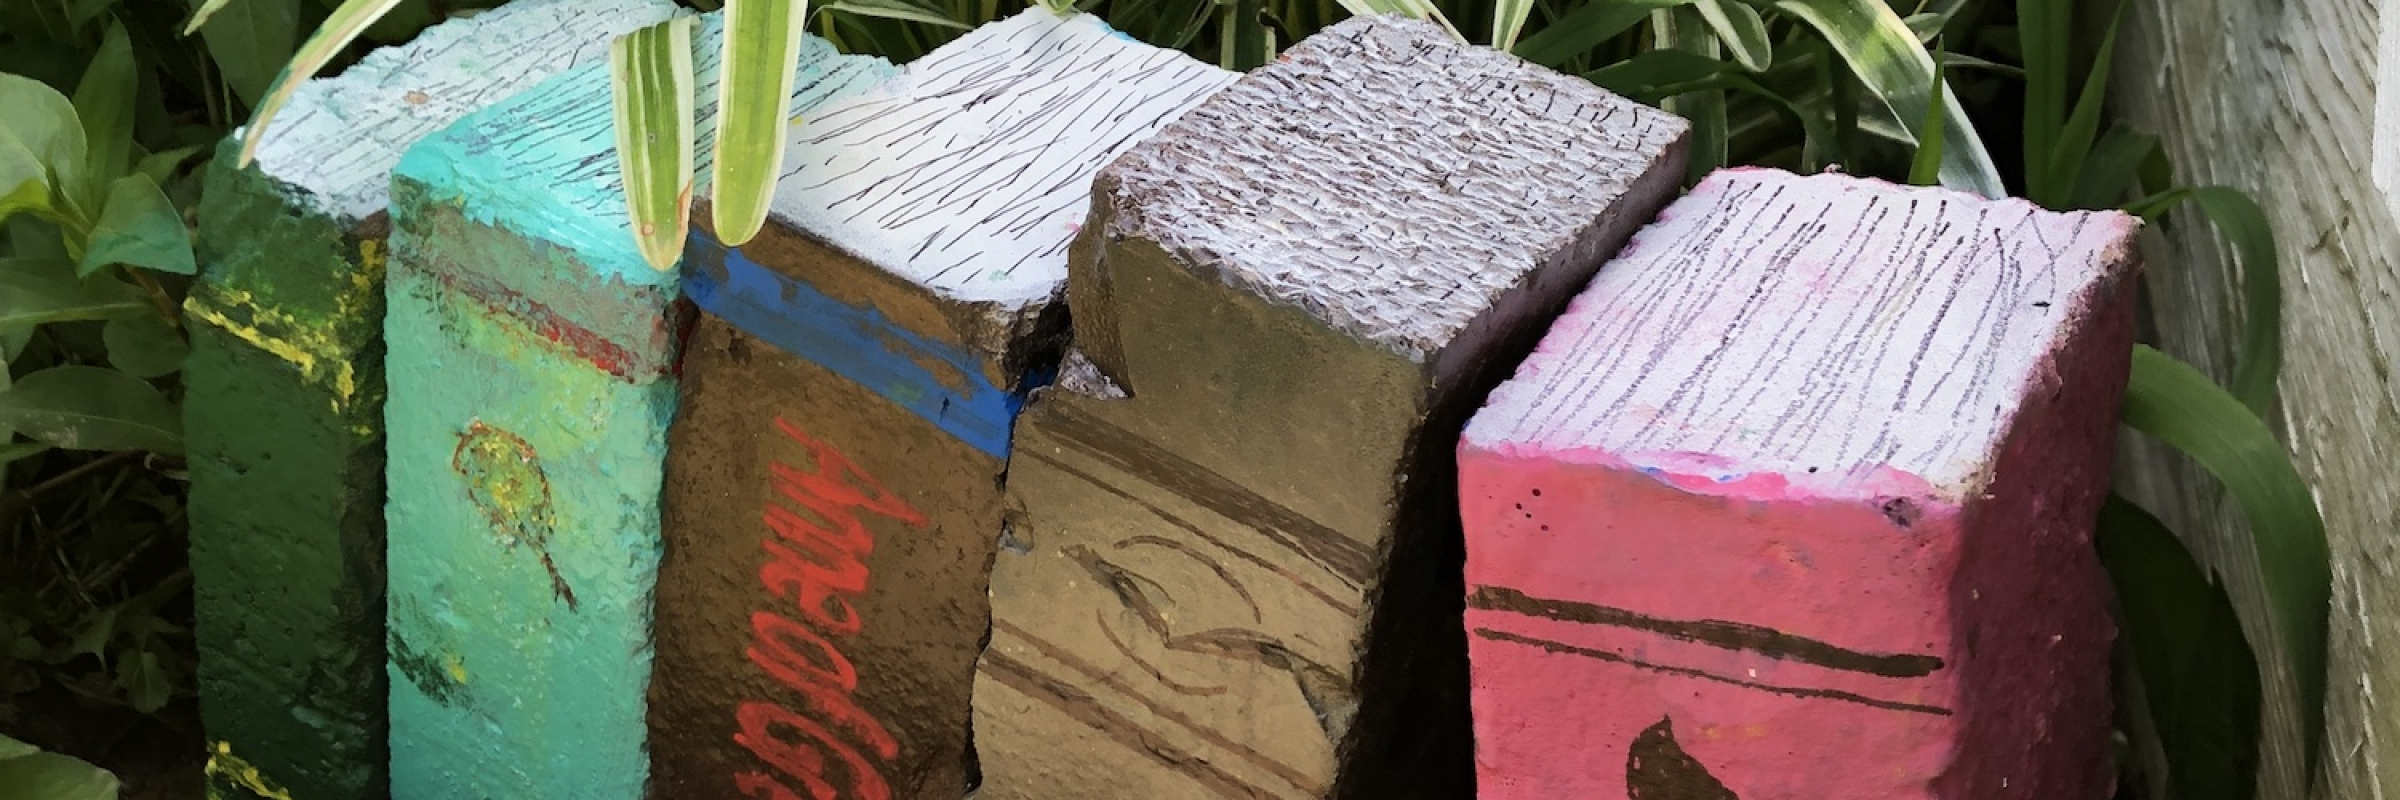 how to create books out of bricks